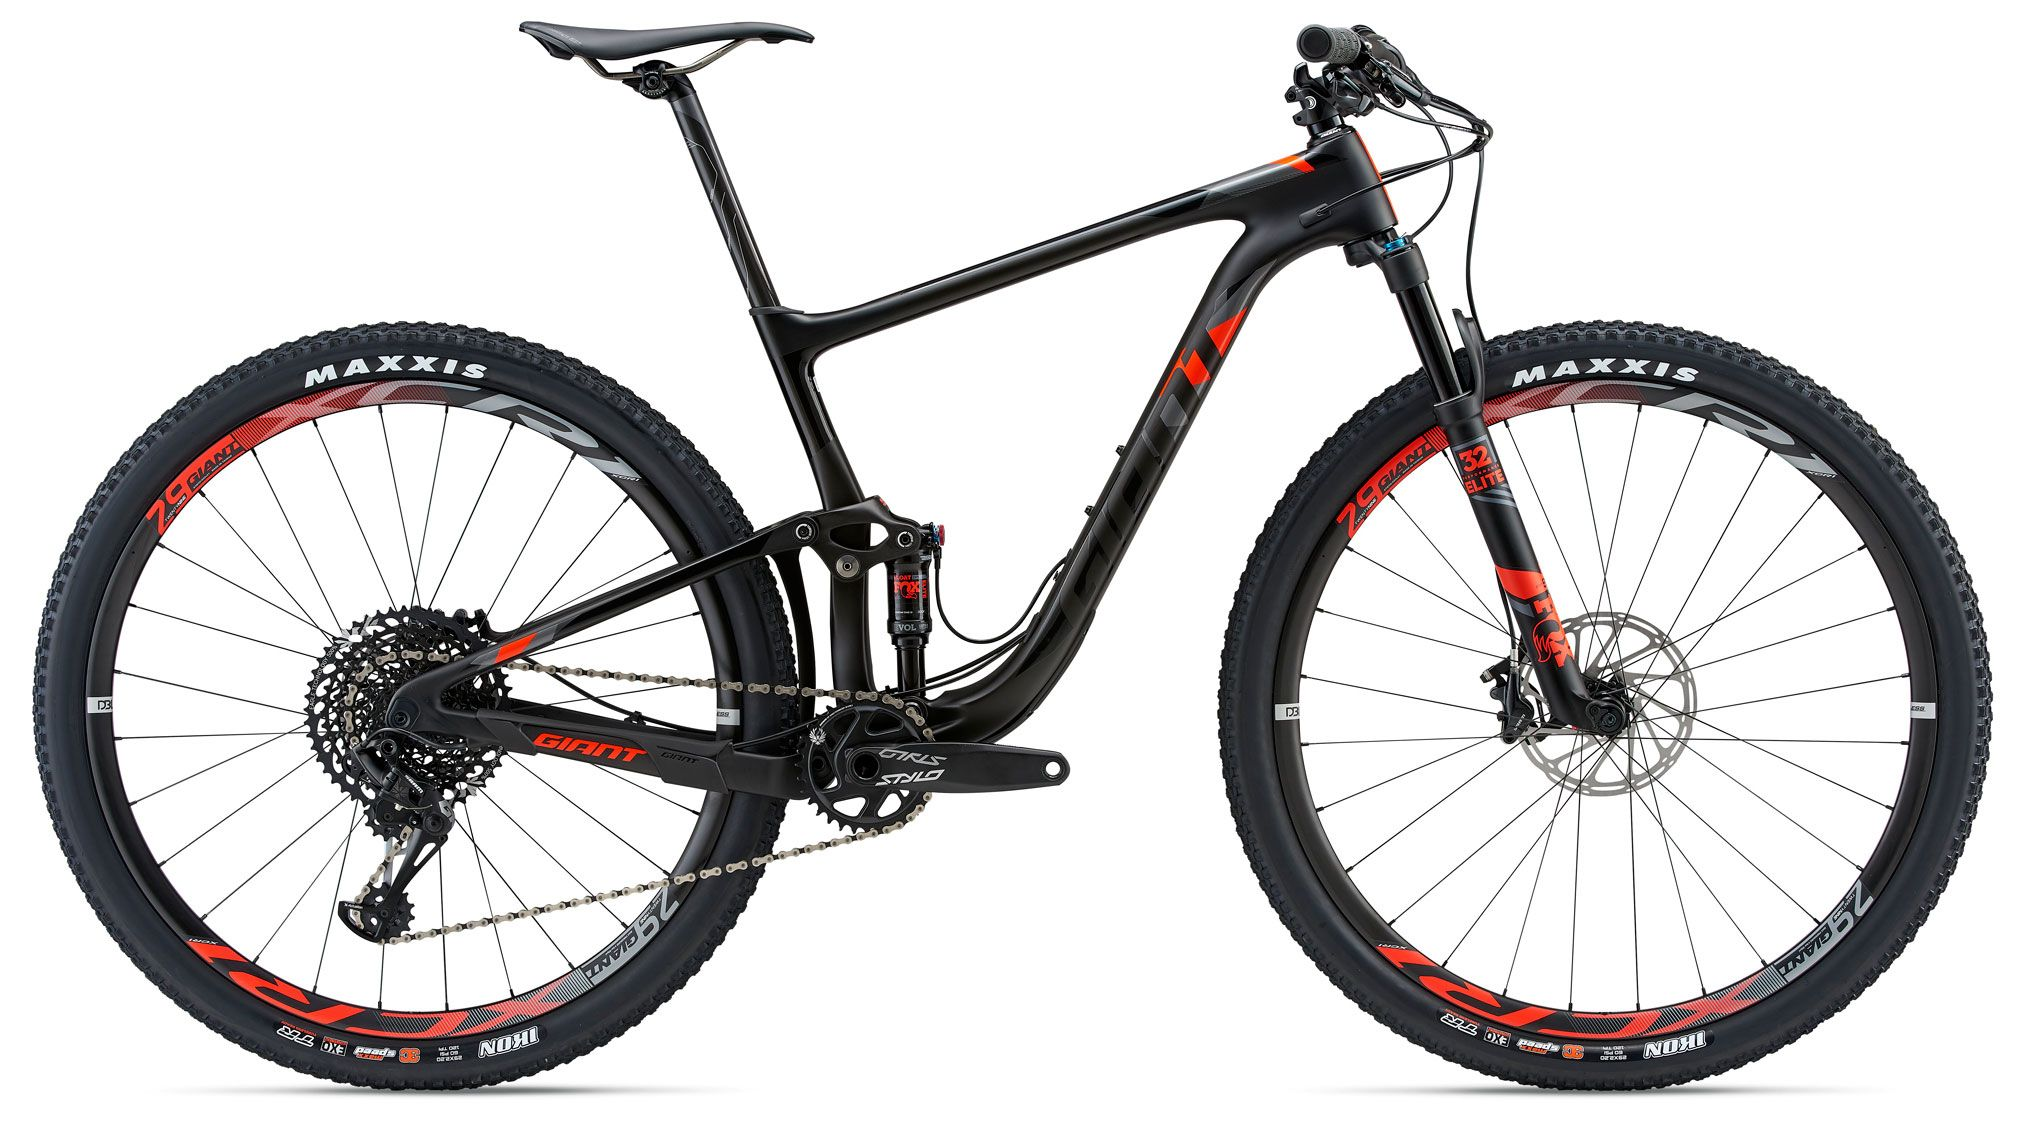 Велосипед Giant Anthem Advanced Pro 29er 1 2018 велосипед giant trinity advanced pro 1 2016